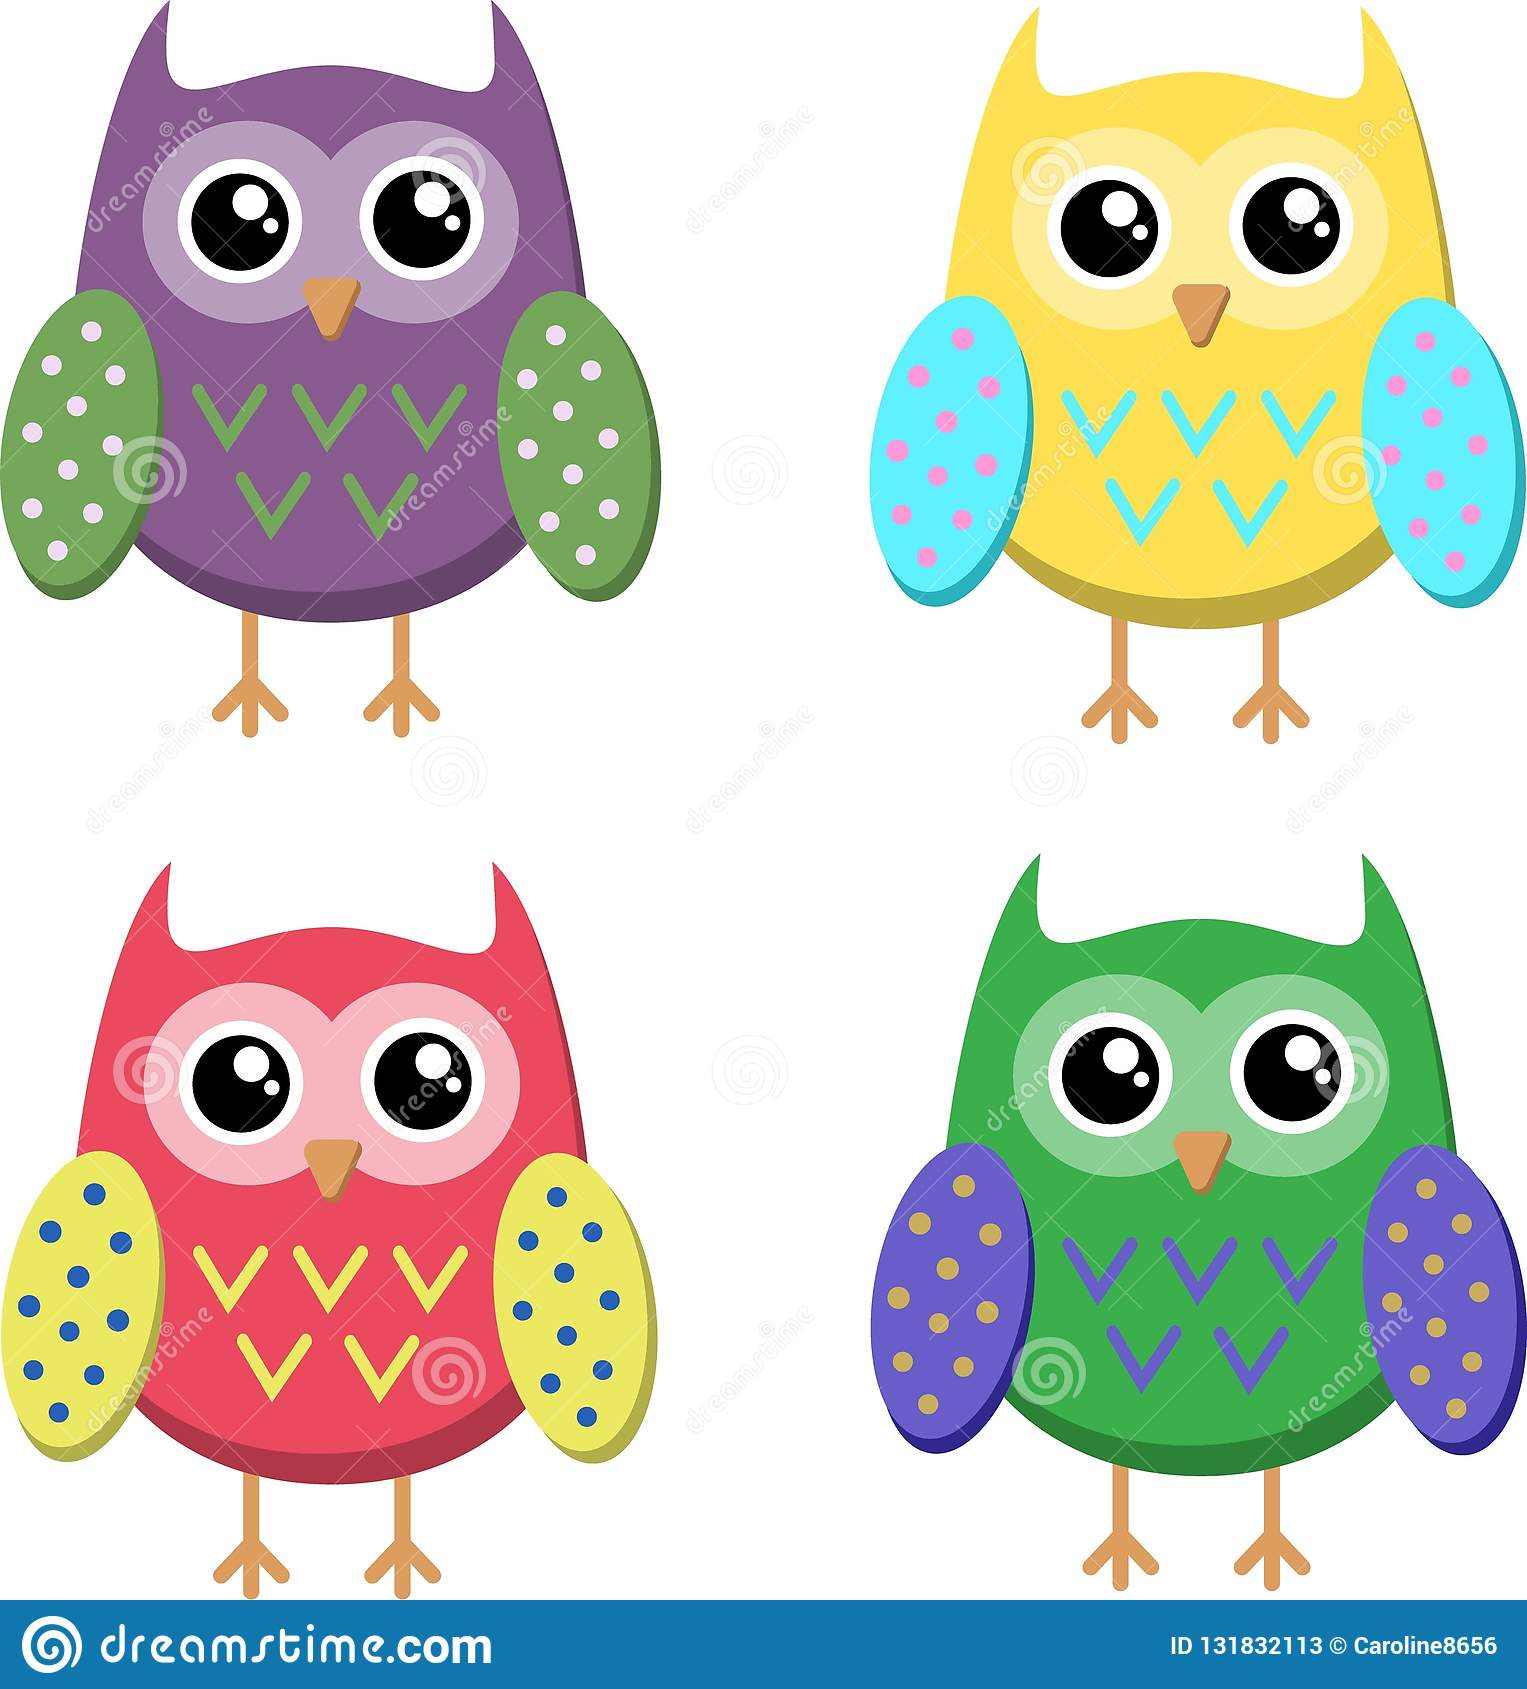 Cute cartoon owls icons, bright owls illustration